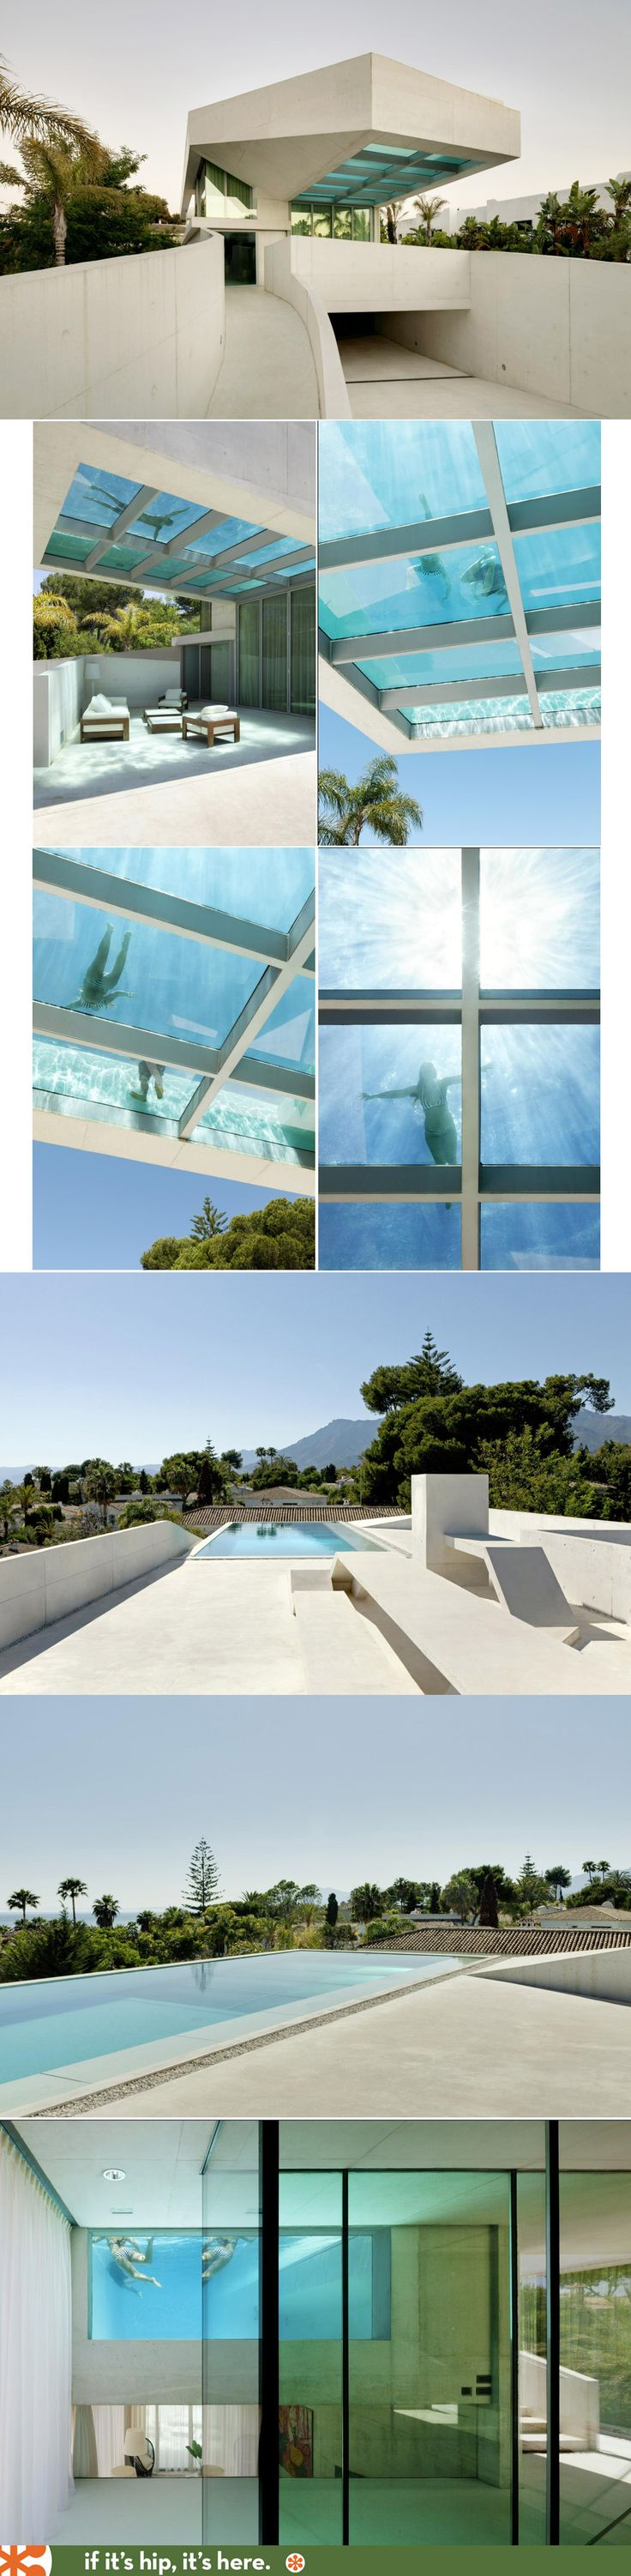 Cant have a cool pool board without the rooftop transparent bottom pool at the